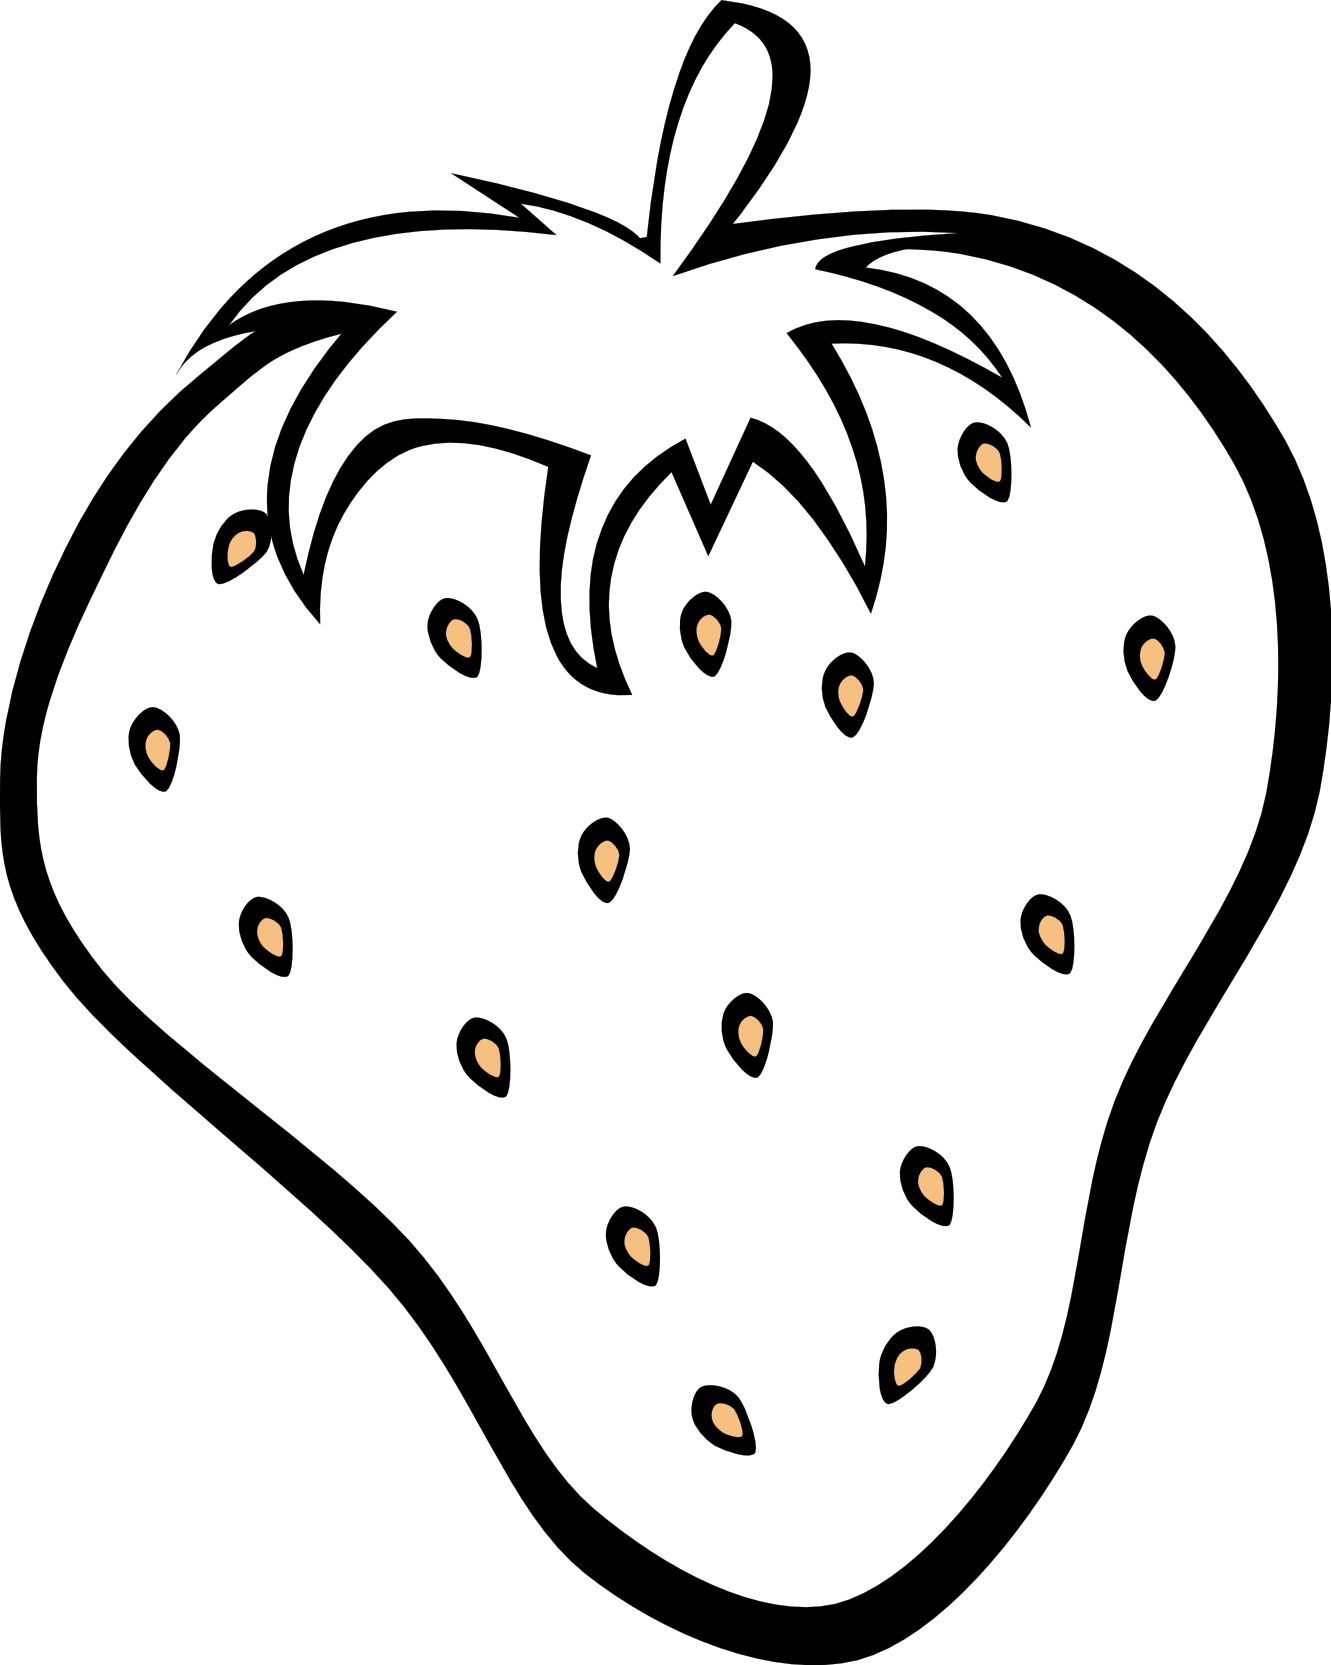 Strawberries clipart angry. Fruit salad black and